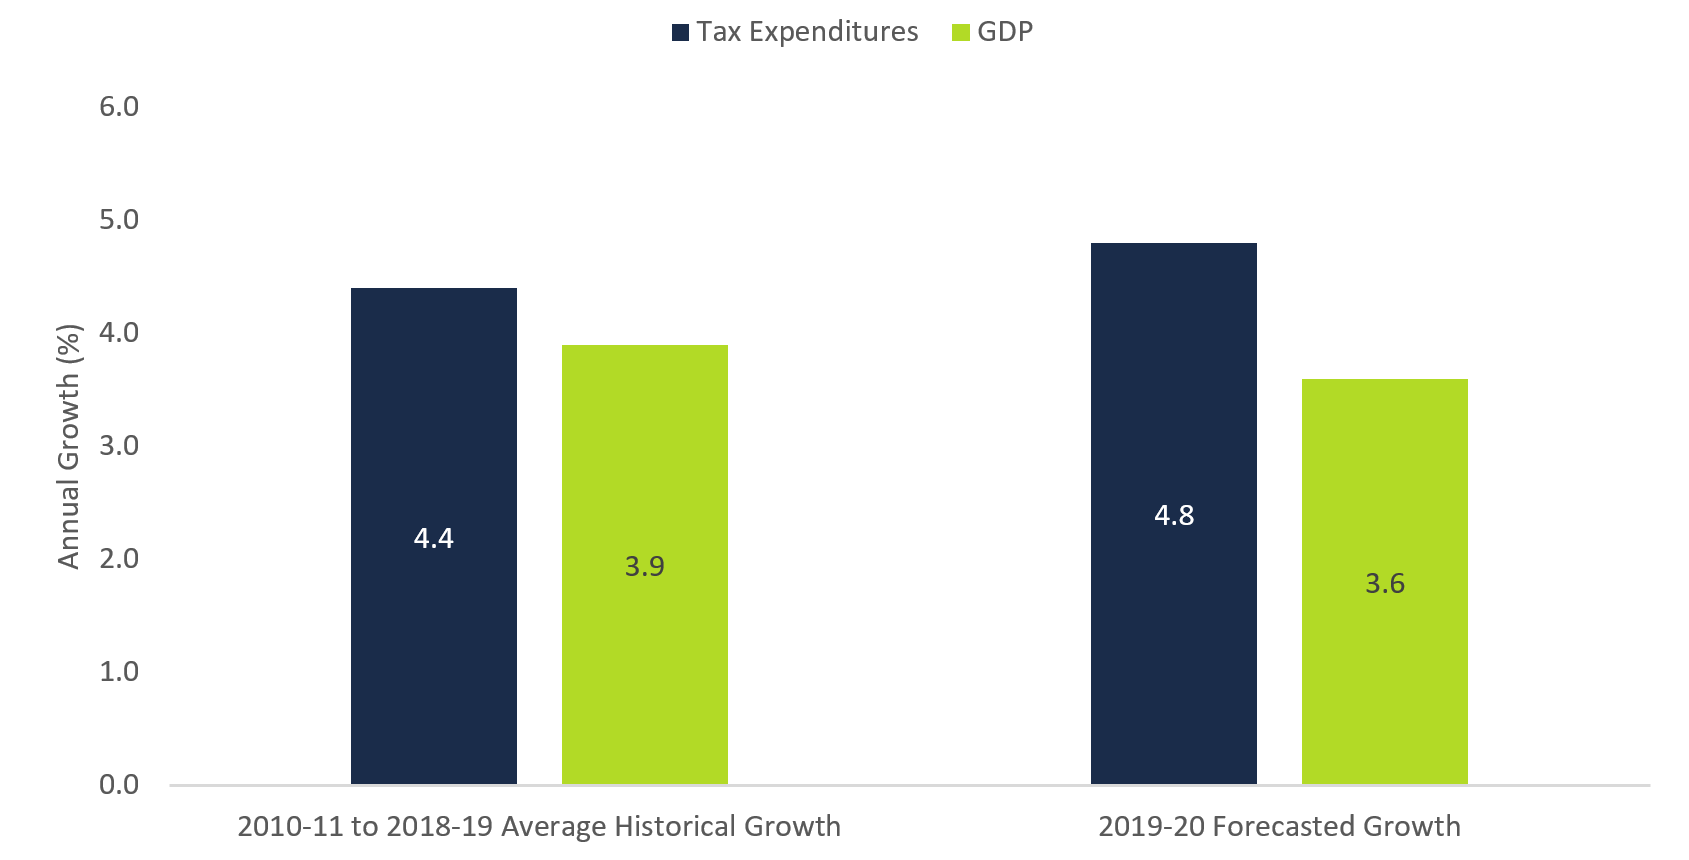 Figure 4 1: Tax expenditure spending growth higher than nominal GDP growth